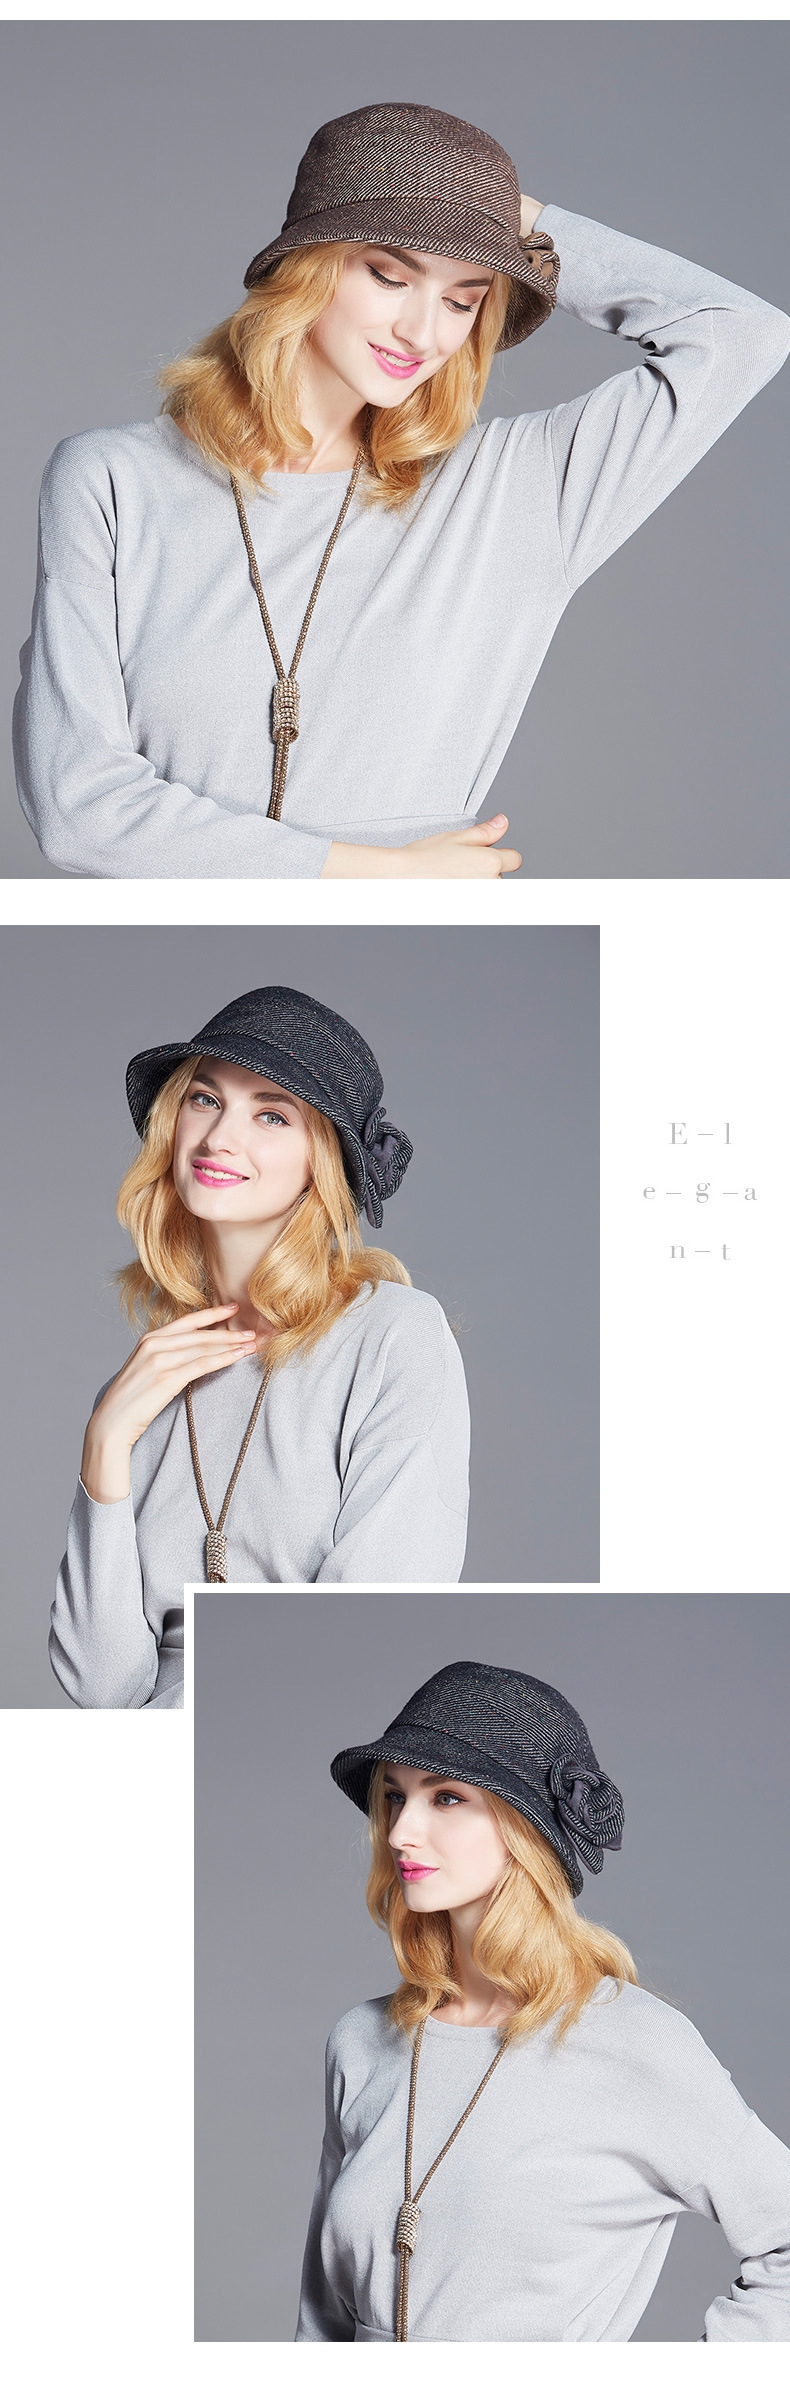 Item 2018 New Women European American Style Rose Flower Color Collision  Bucket Hats Female Elegant Fashion Dome Small Fedoras Hats d1b3376f6b75